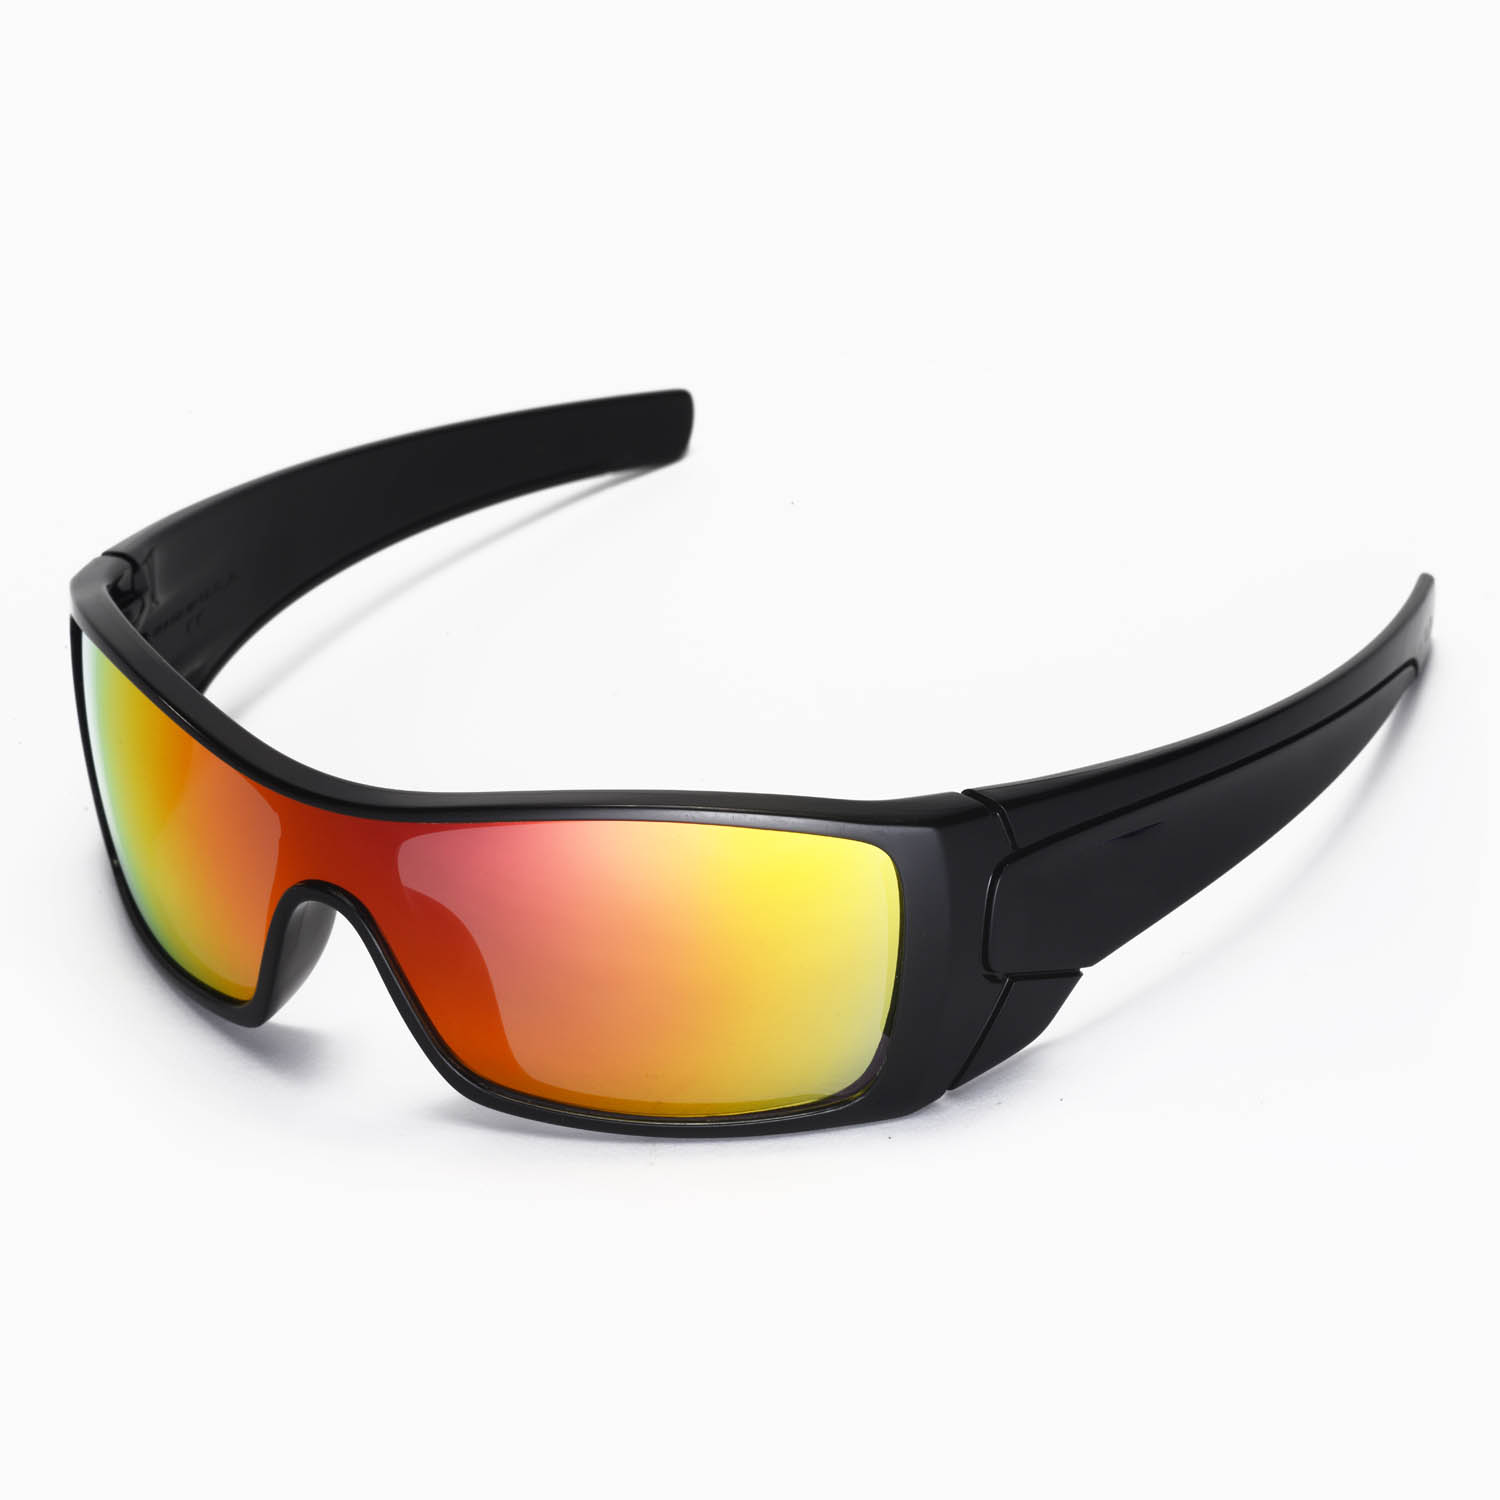 Are All Oakleys Polarized